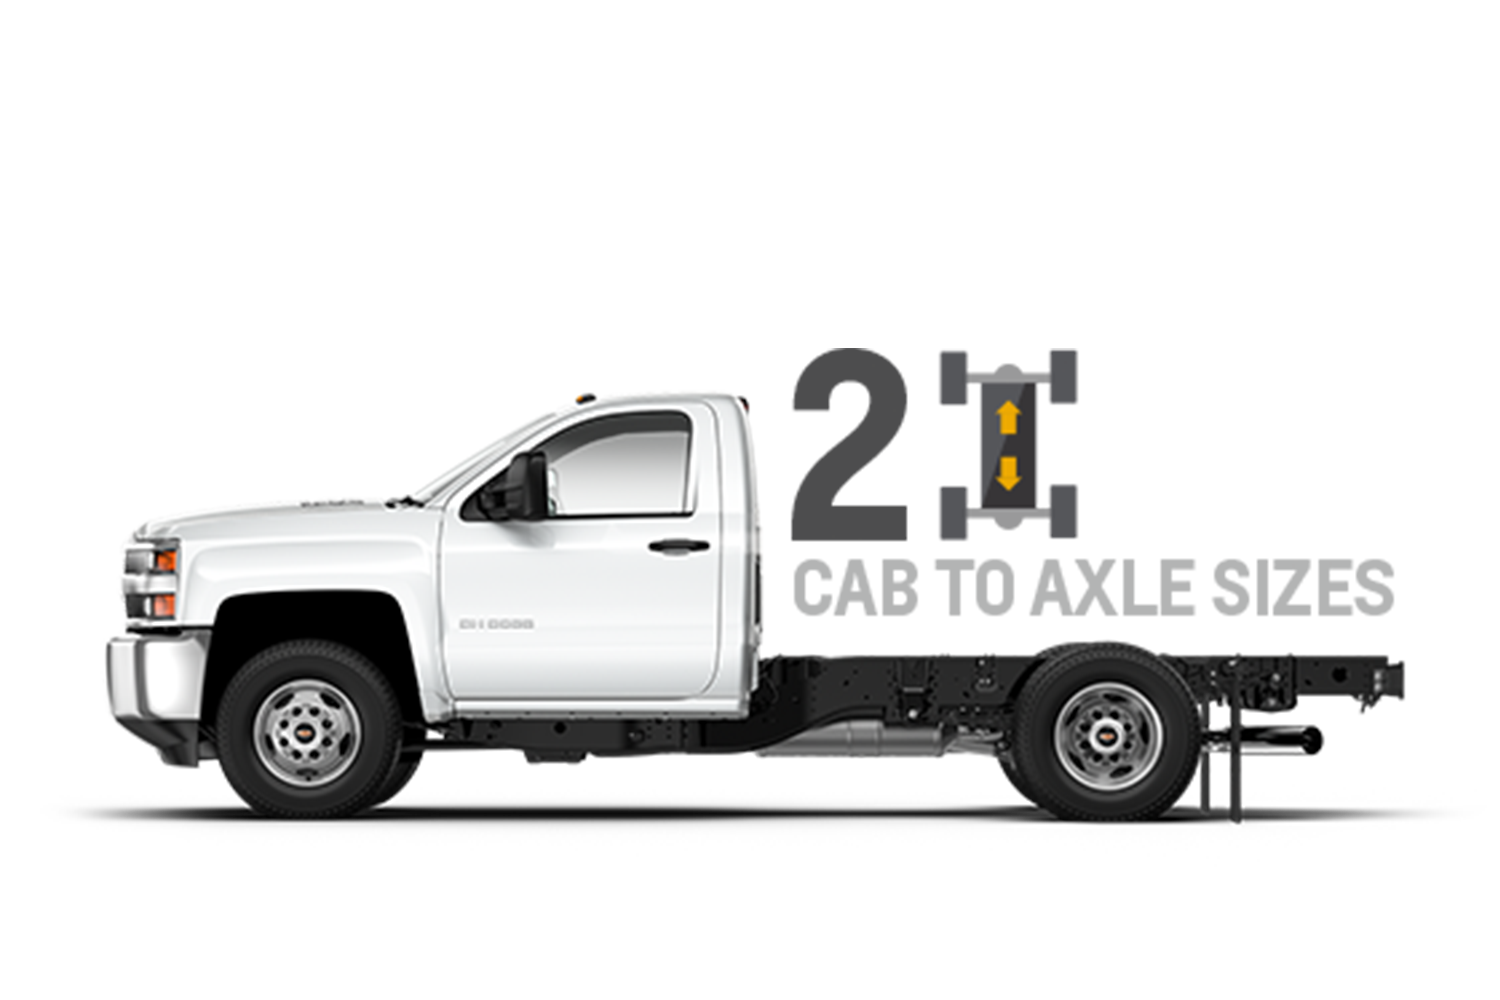 2018 silverado 3500hd chassis cab chevrolet rh chevrolet com 2005 Chevy  Colorado Wiring-Diagram 2005 Chevy 3500 Wiring Diagram Cm Bed